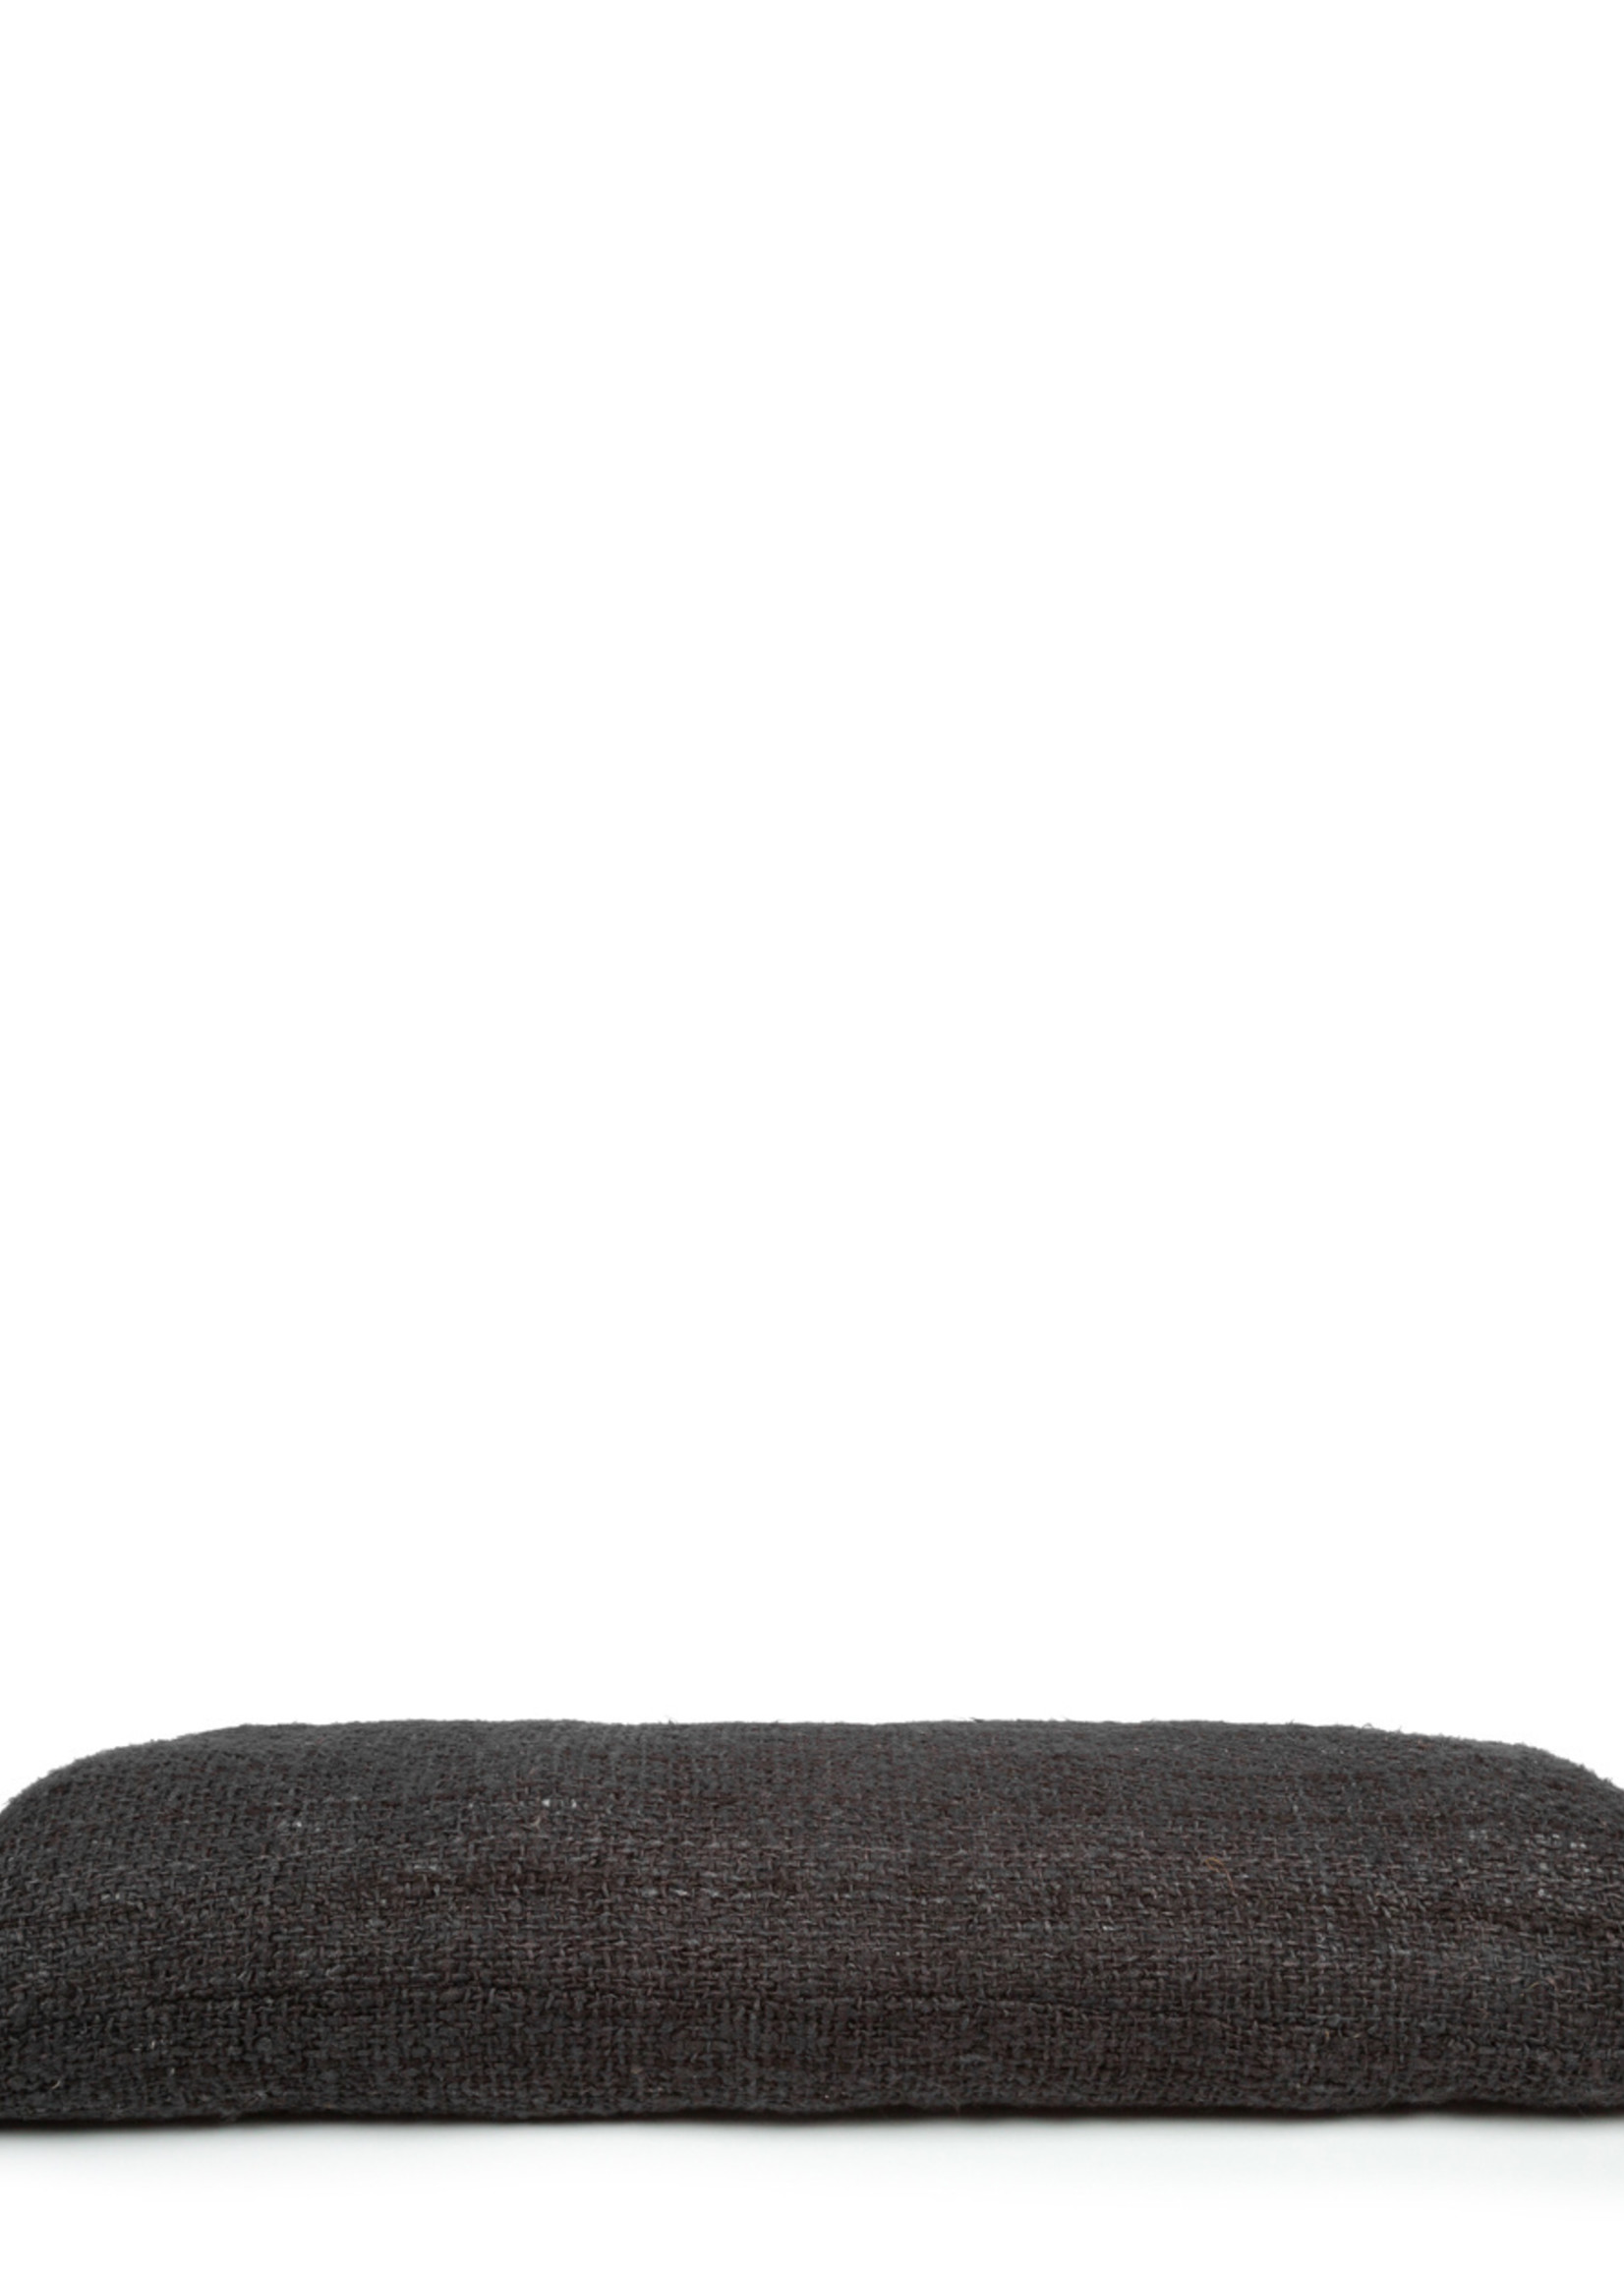 The Oh My Gee Cushion - Black Navy